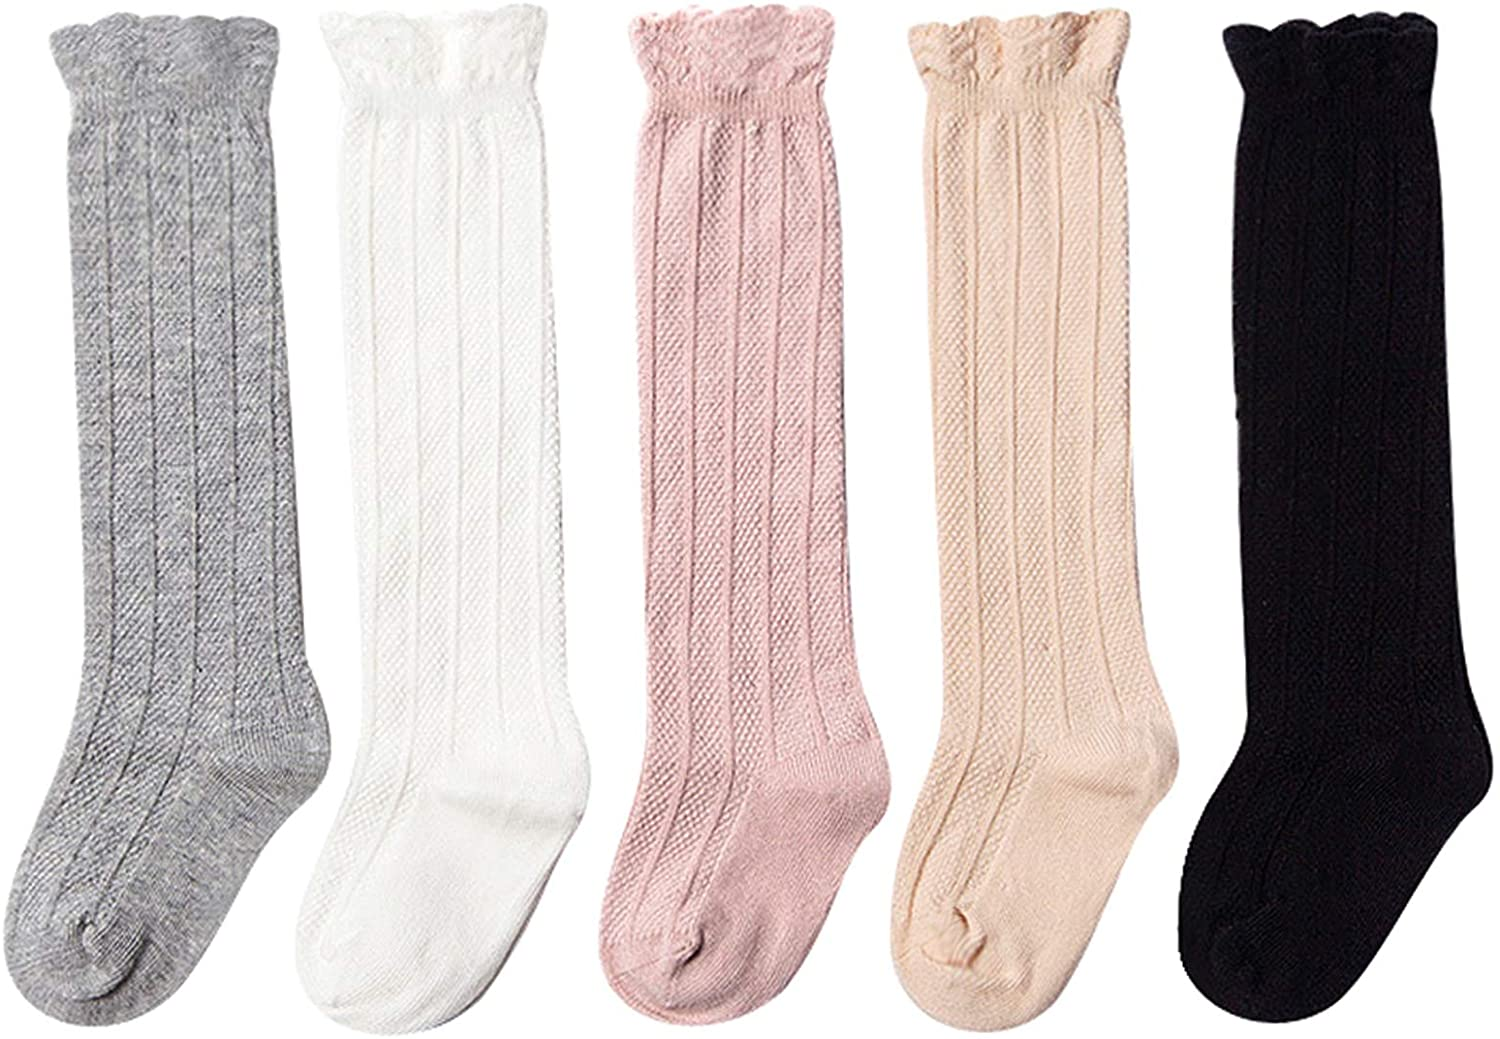 Epeius Baby Girls Boys Uniform Knee High Socks Tube Ruffled Stockings Infants and Toddlers (Pack of 3/5)